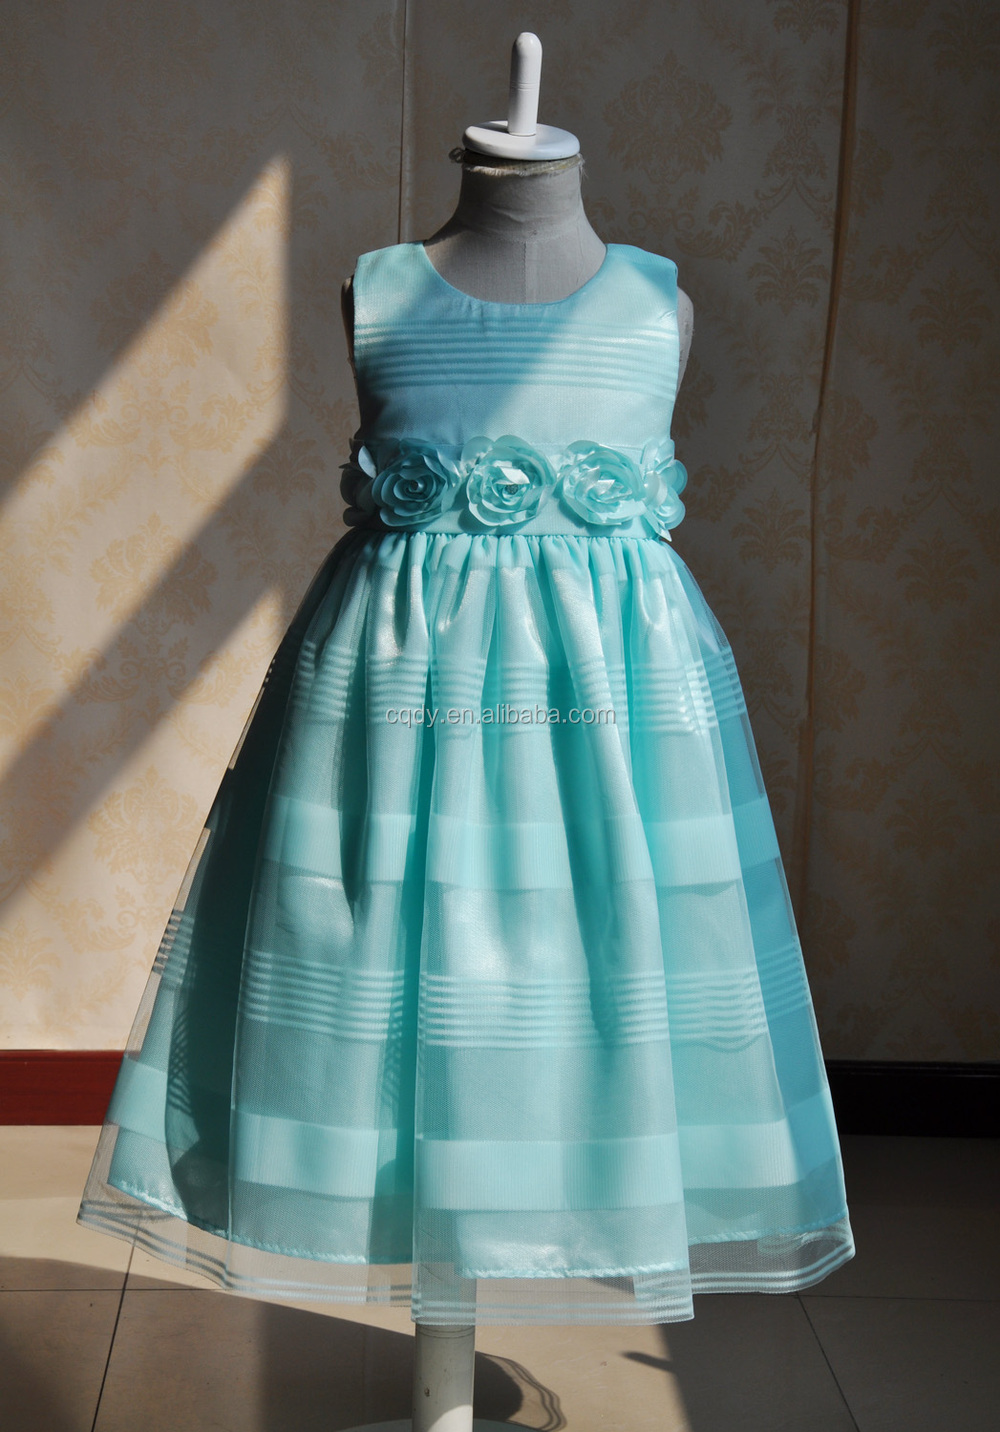 2015 Kids Beautiful Model Dresses Birthday Dress For Girl Of 7 Years ...